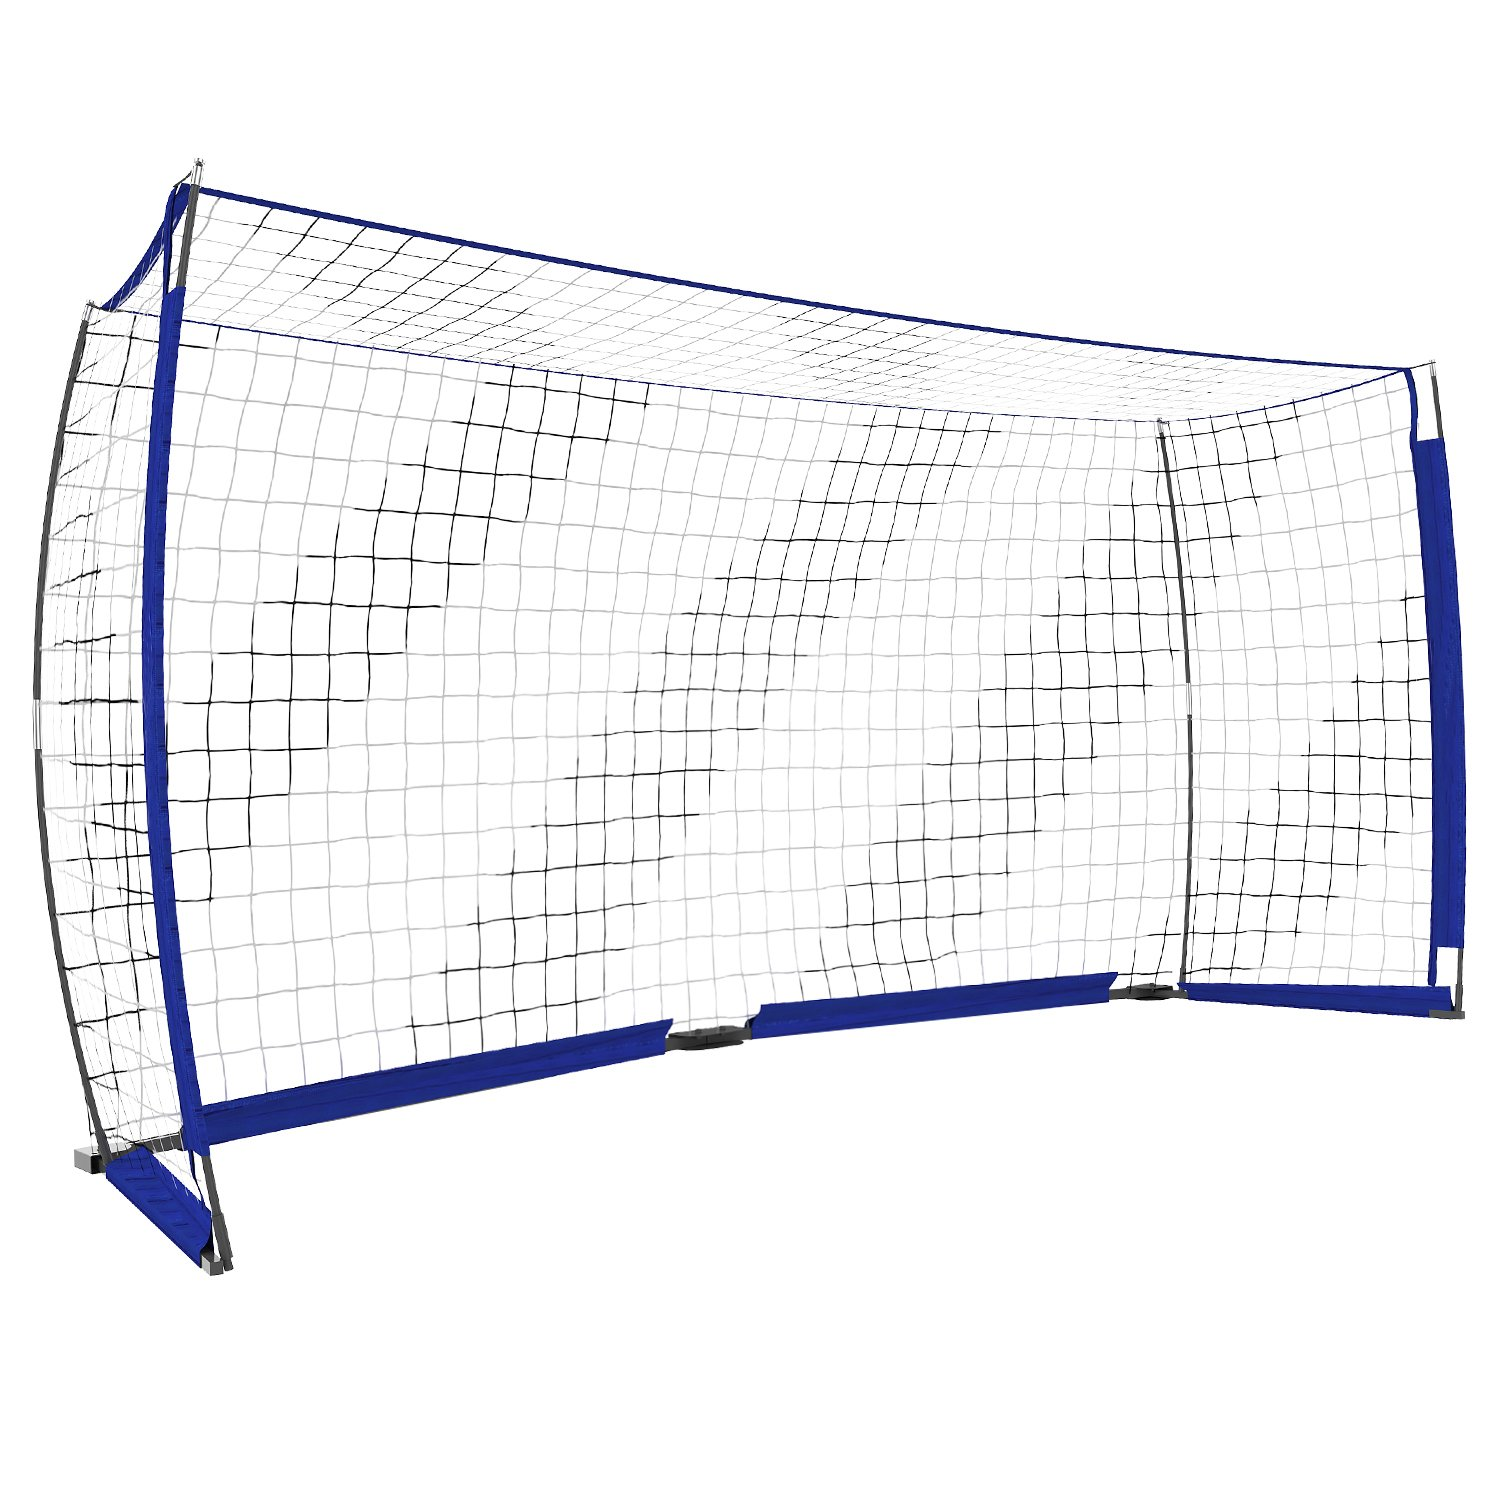 Yuebo Portable Soccer Goal Net裏庭、12 x 6 ft/6 x 4 ftサッカーBow Net子供&大人with Carryバッグ B07BNG2V8512x6 ft Blue